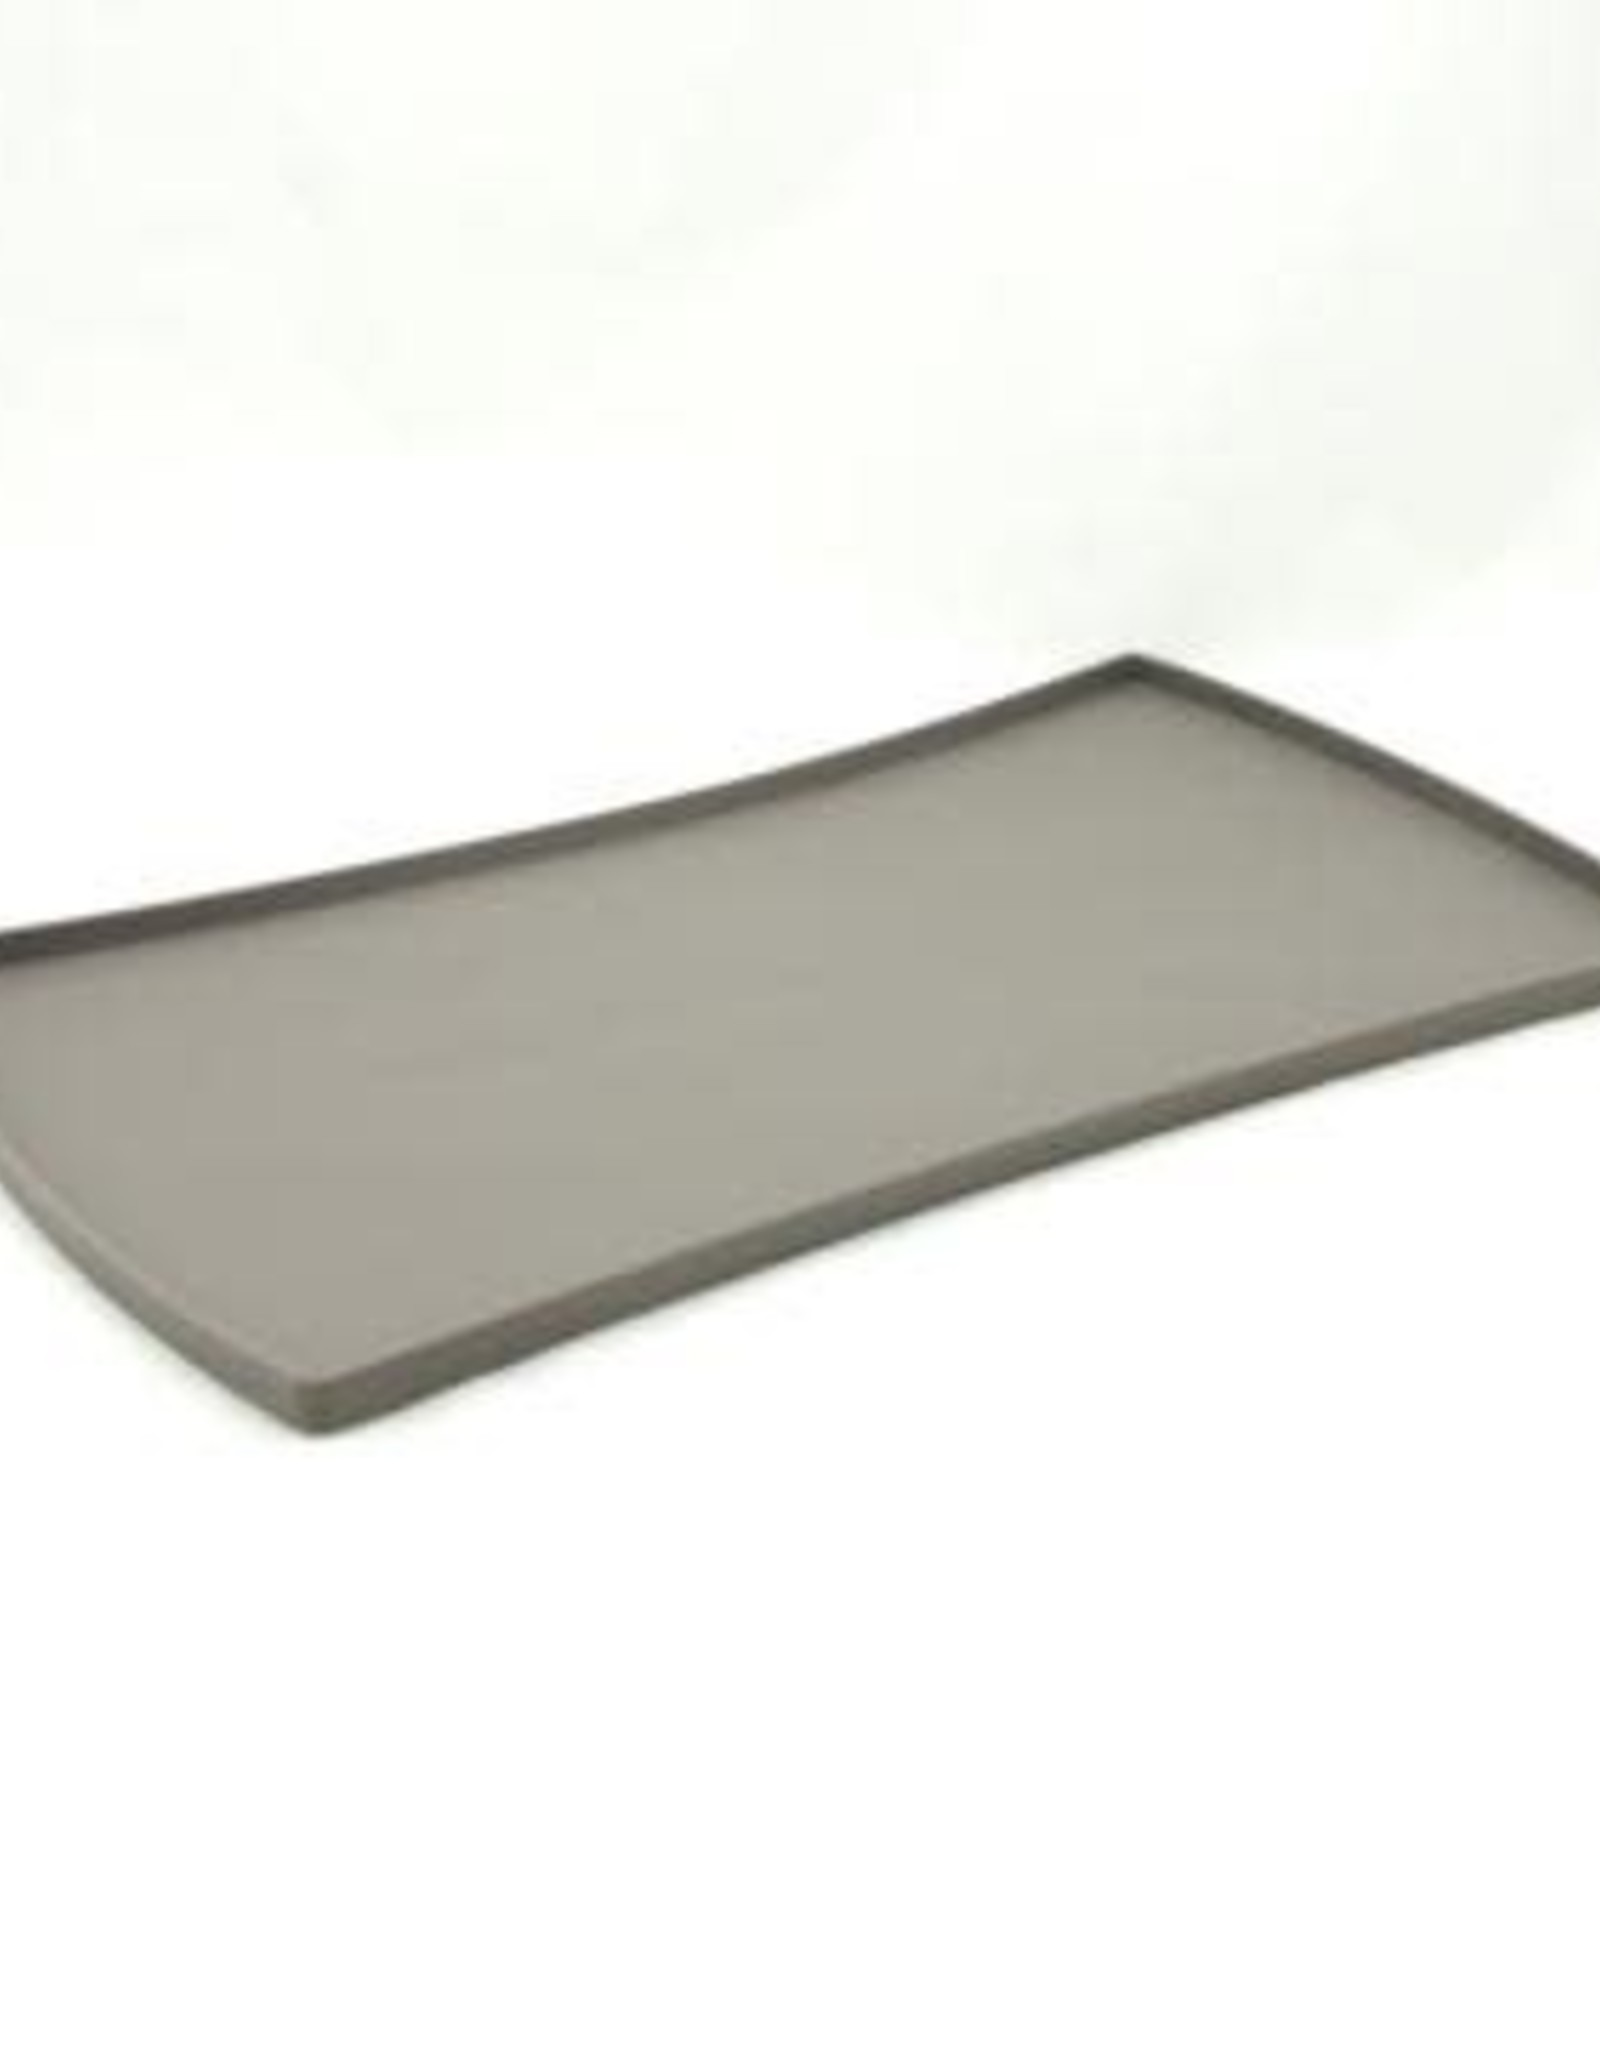 Messy Mutts Messy Mutts Silicone Mat with Raised Edge Dark Grey